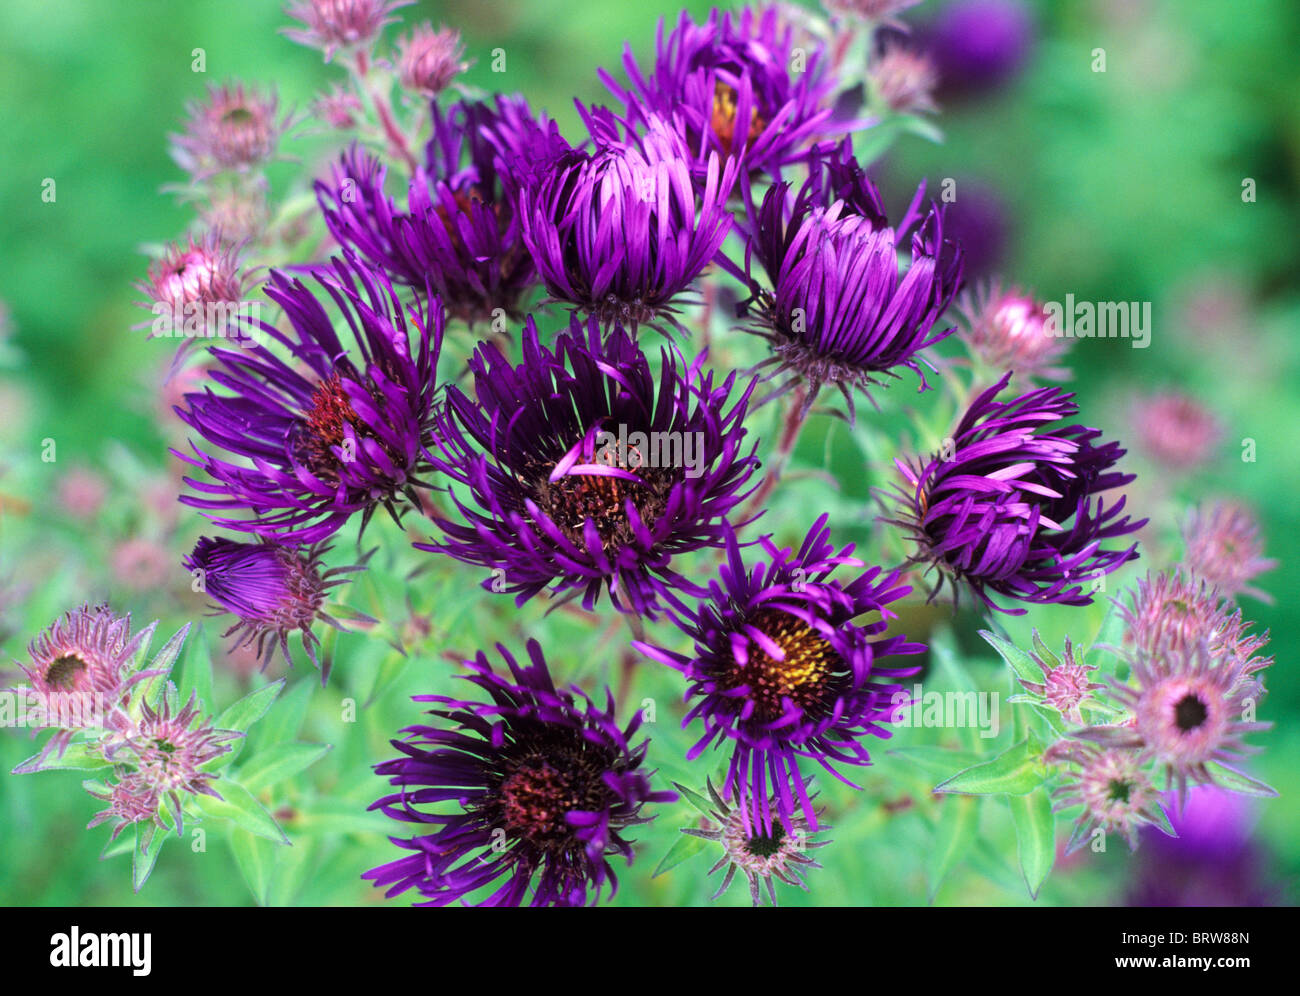 aster novaeangliae 'marina wolkonsky' asters purple flower, Beautiful flower